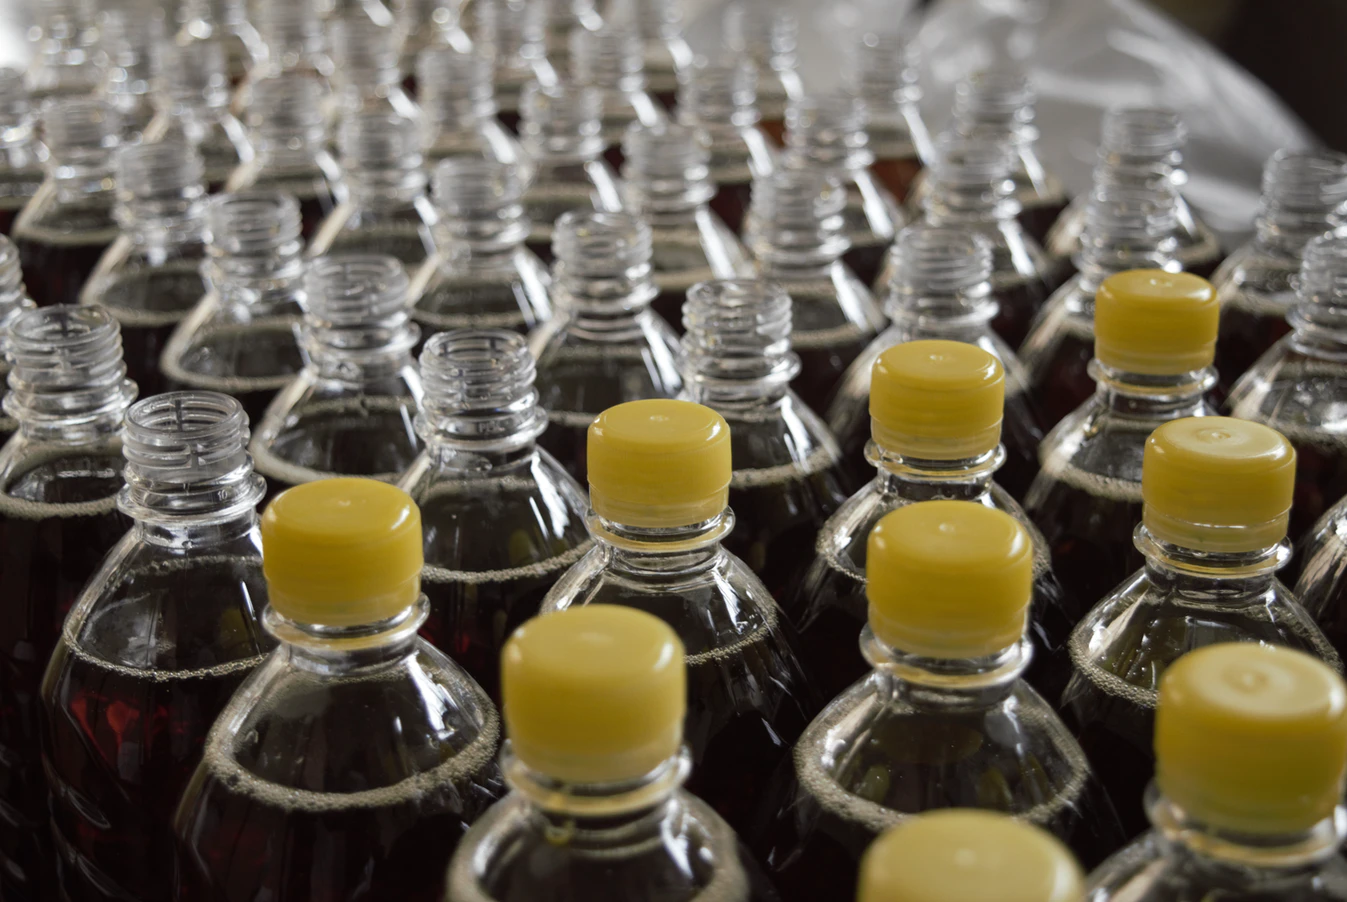 assembly line of soda bottles and caps